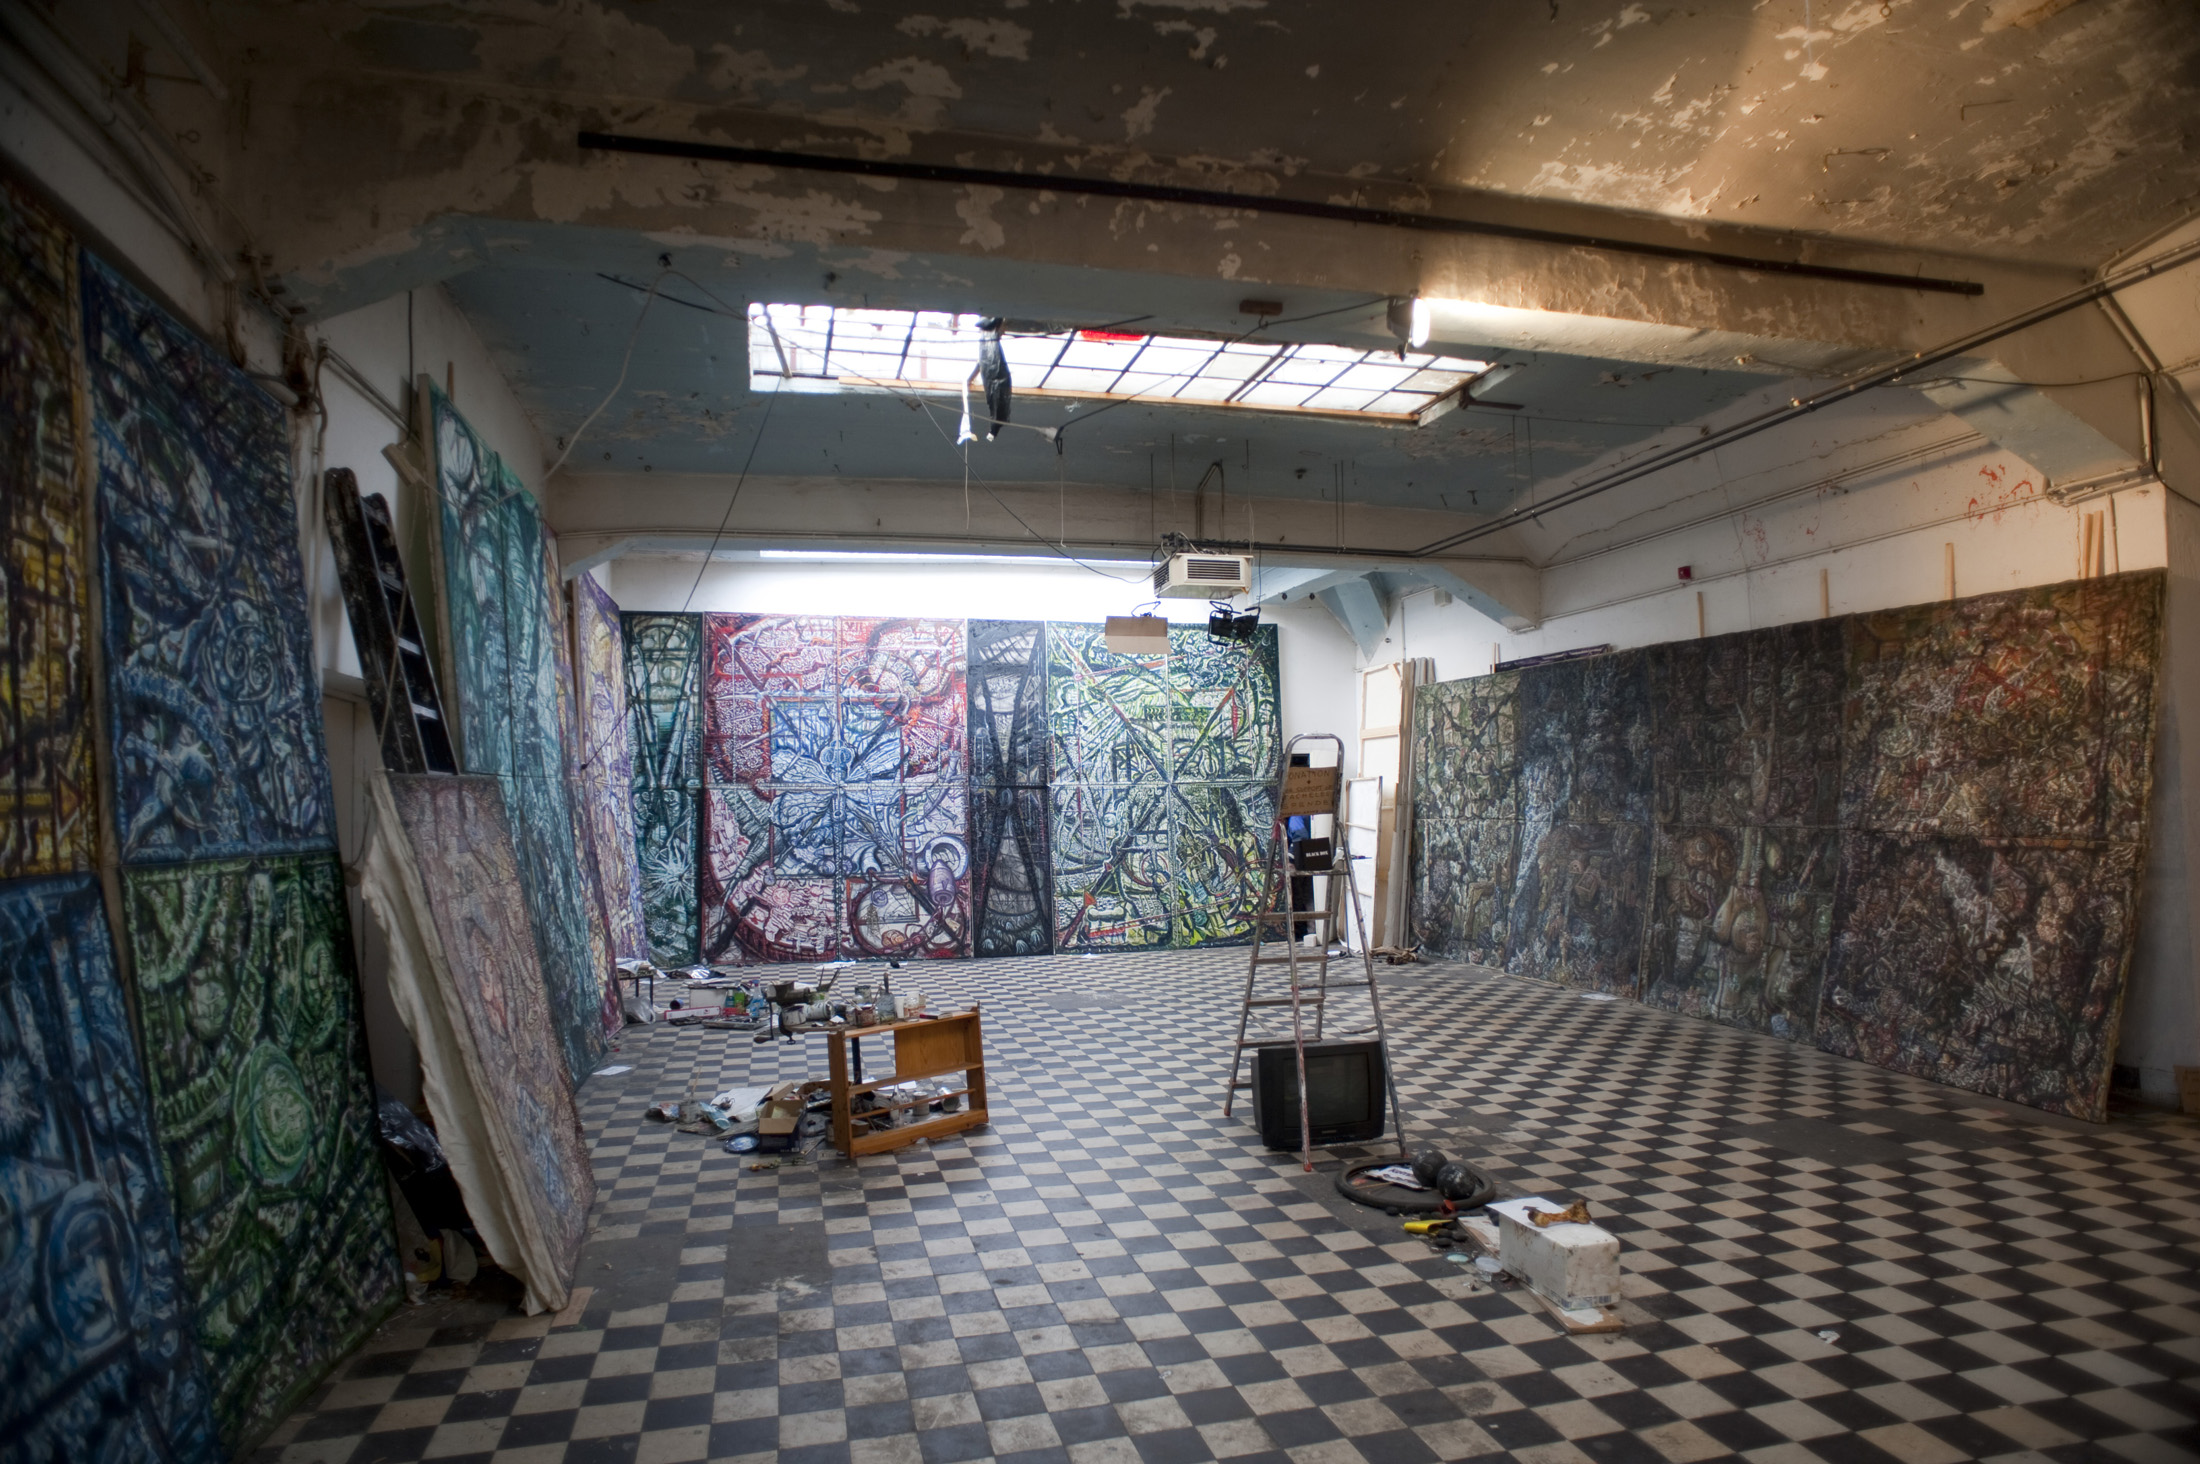 art space in the former Kunsthaus Tacheles art squat